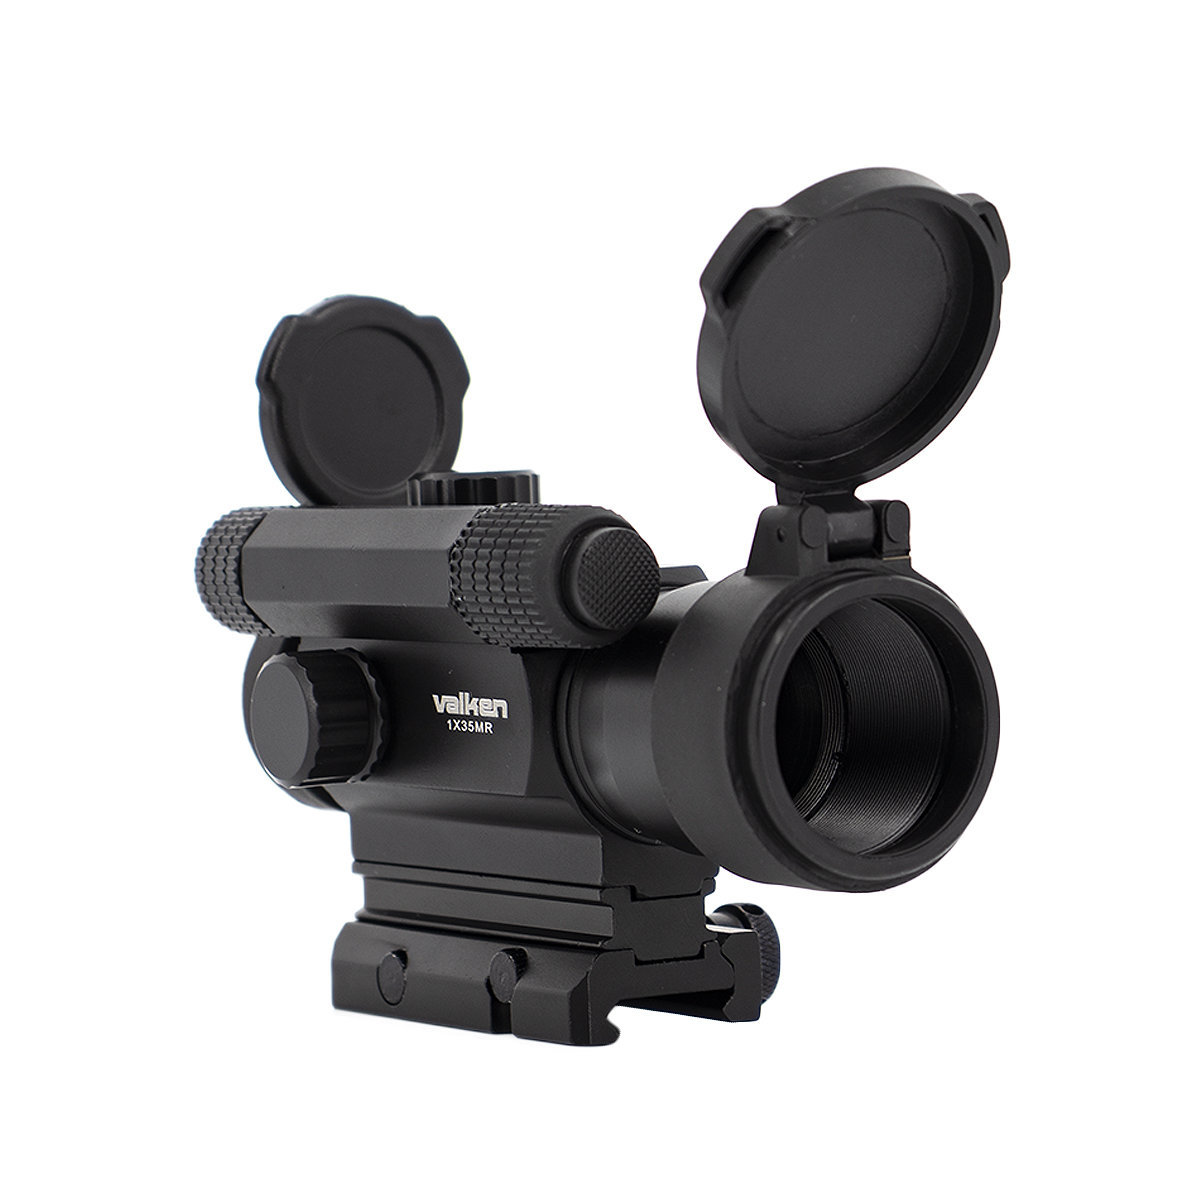 View larger image of Valken 1x35 Multi-Reticle Red Dot Sight